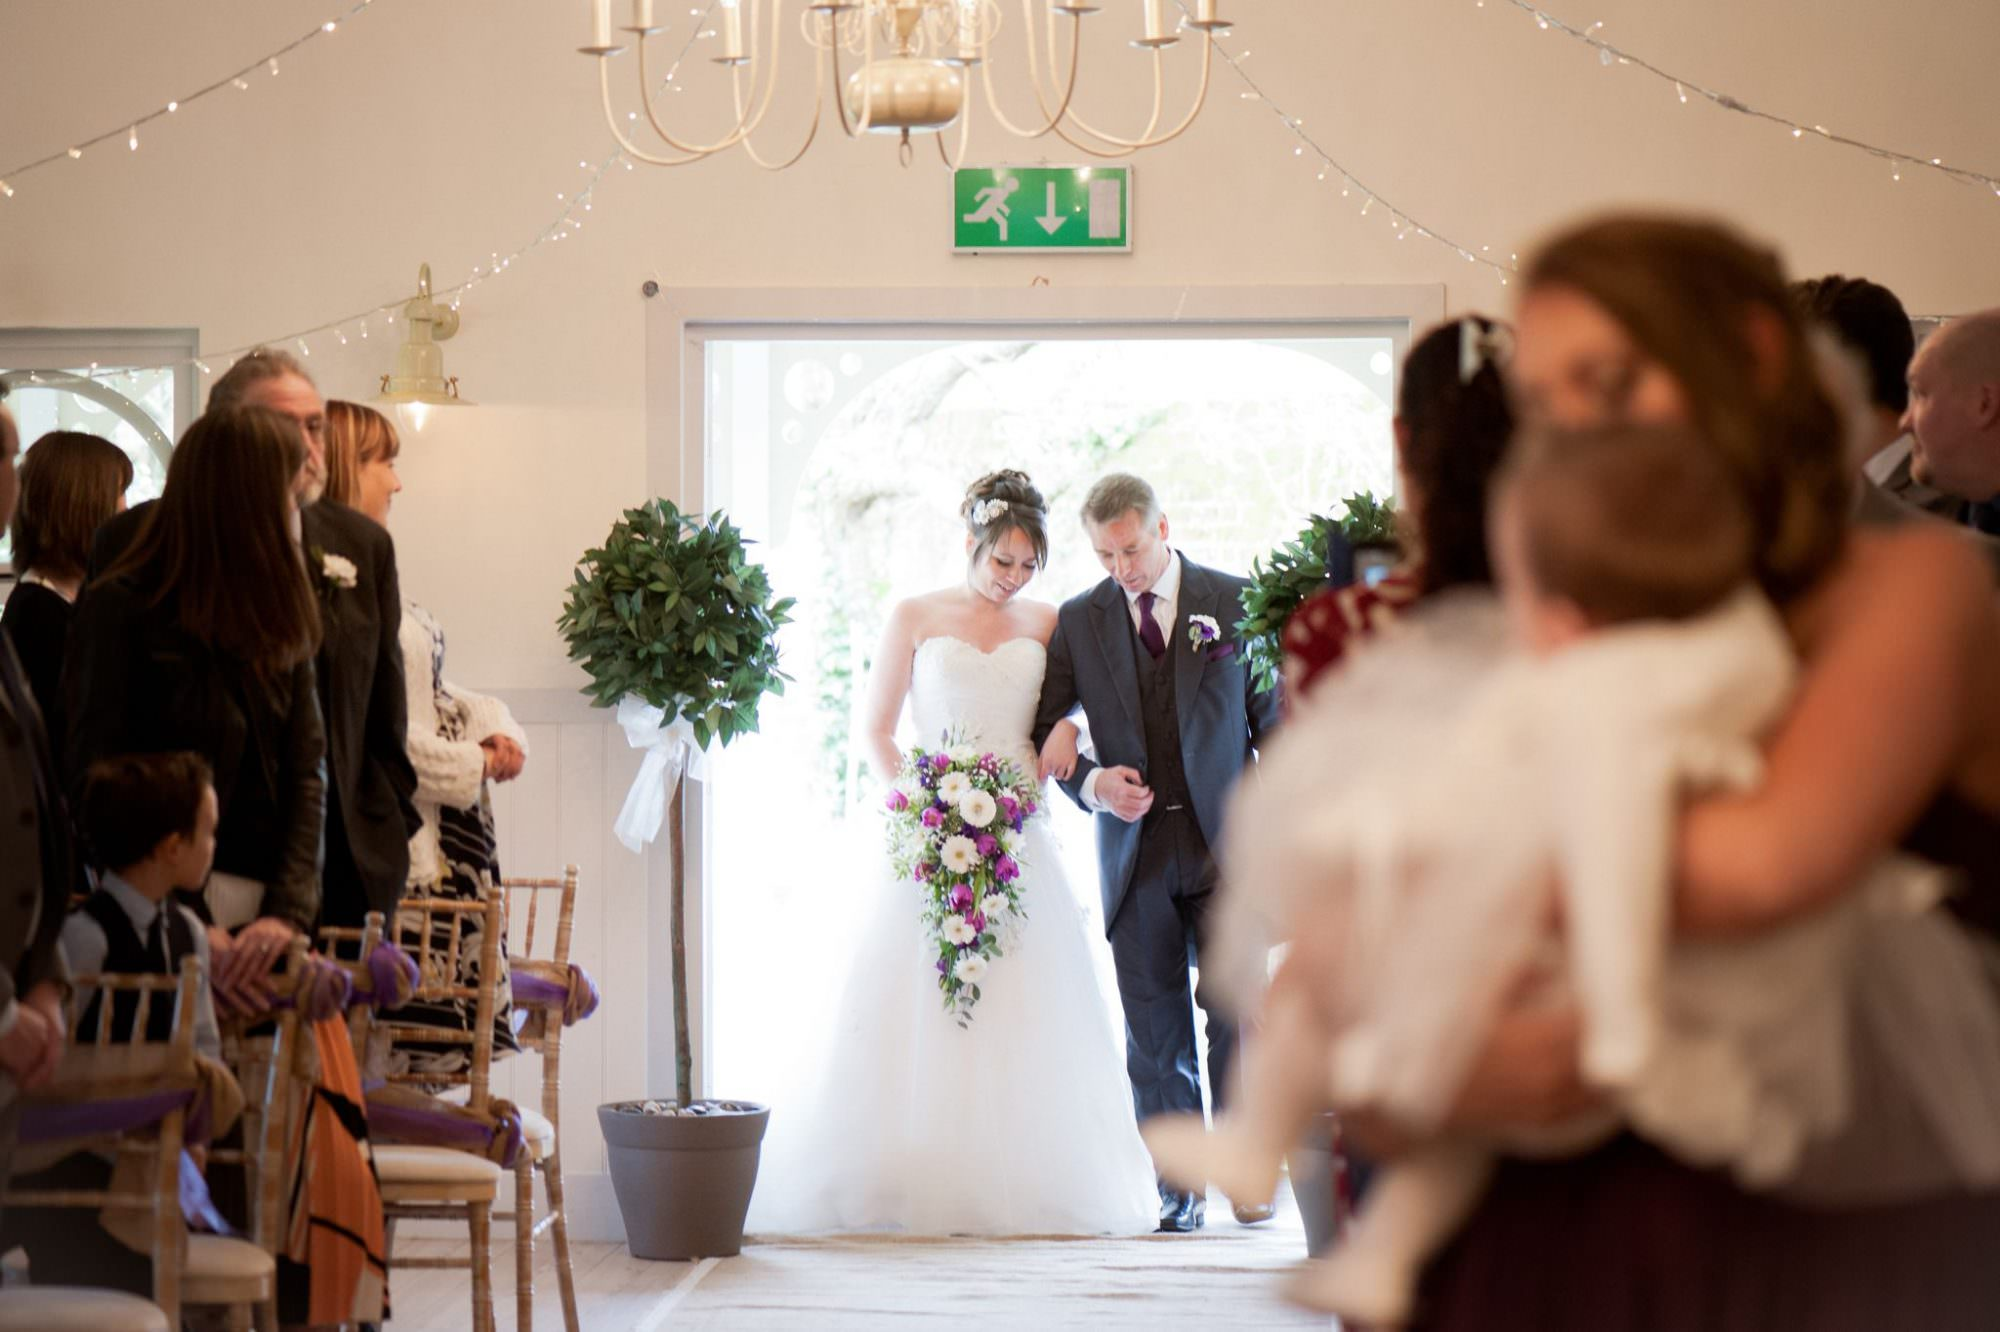 Bridal entrance at Kings Arms Hotel Wedding